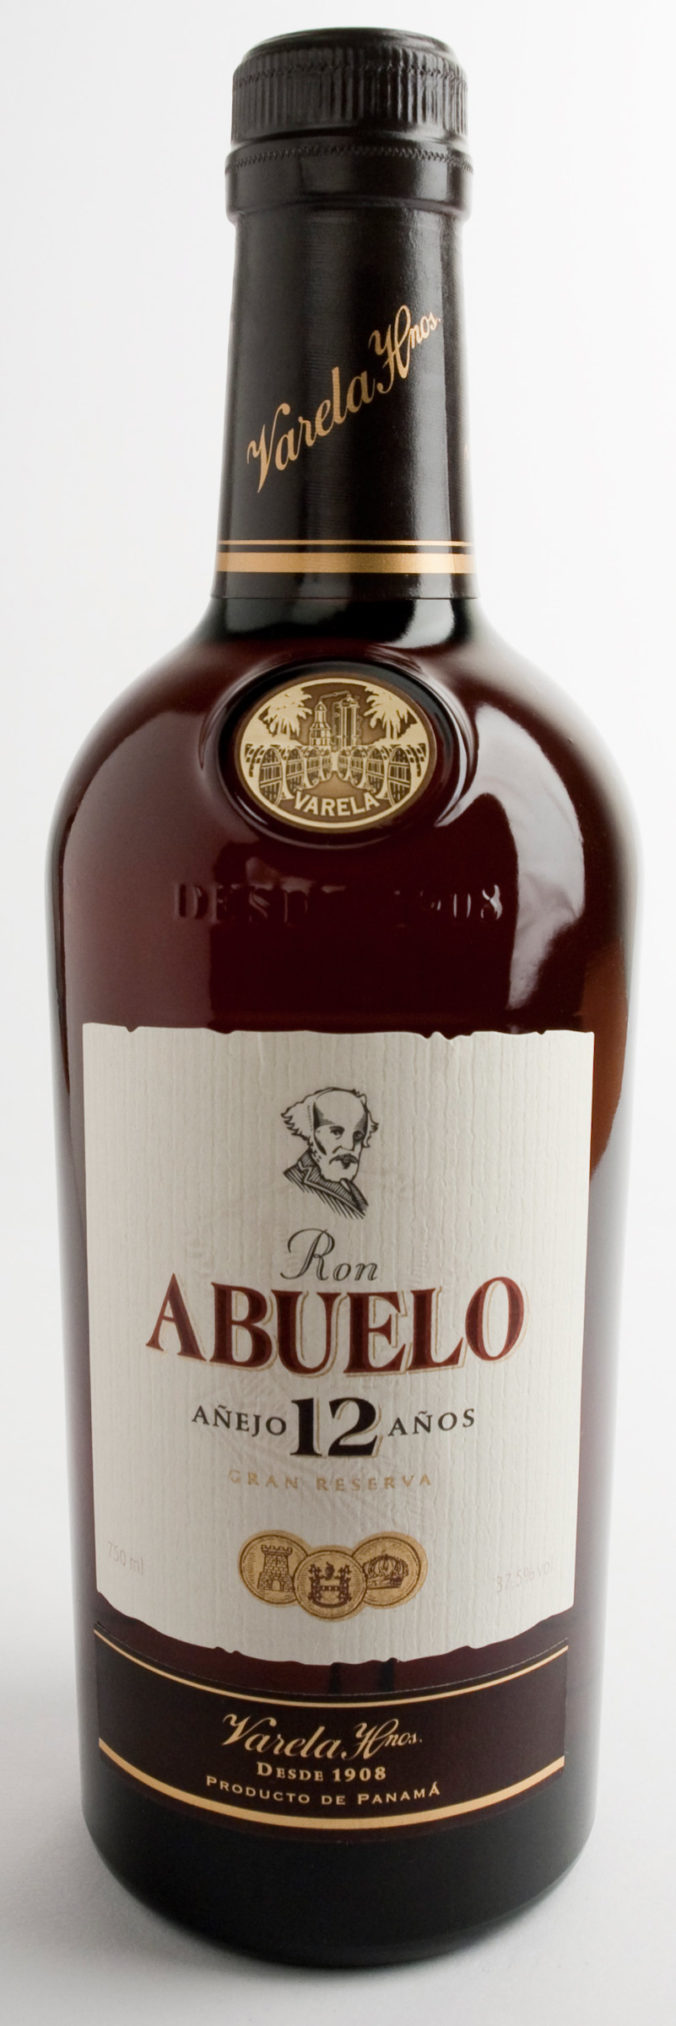 Abuelo 12 year old aged from from Panama